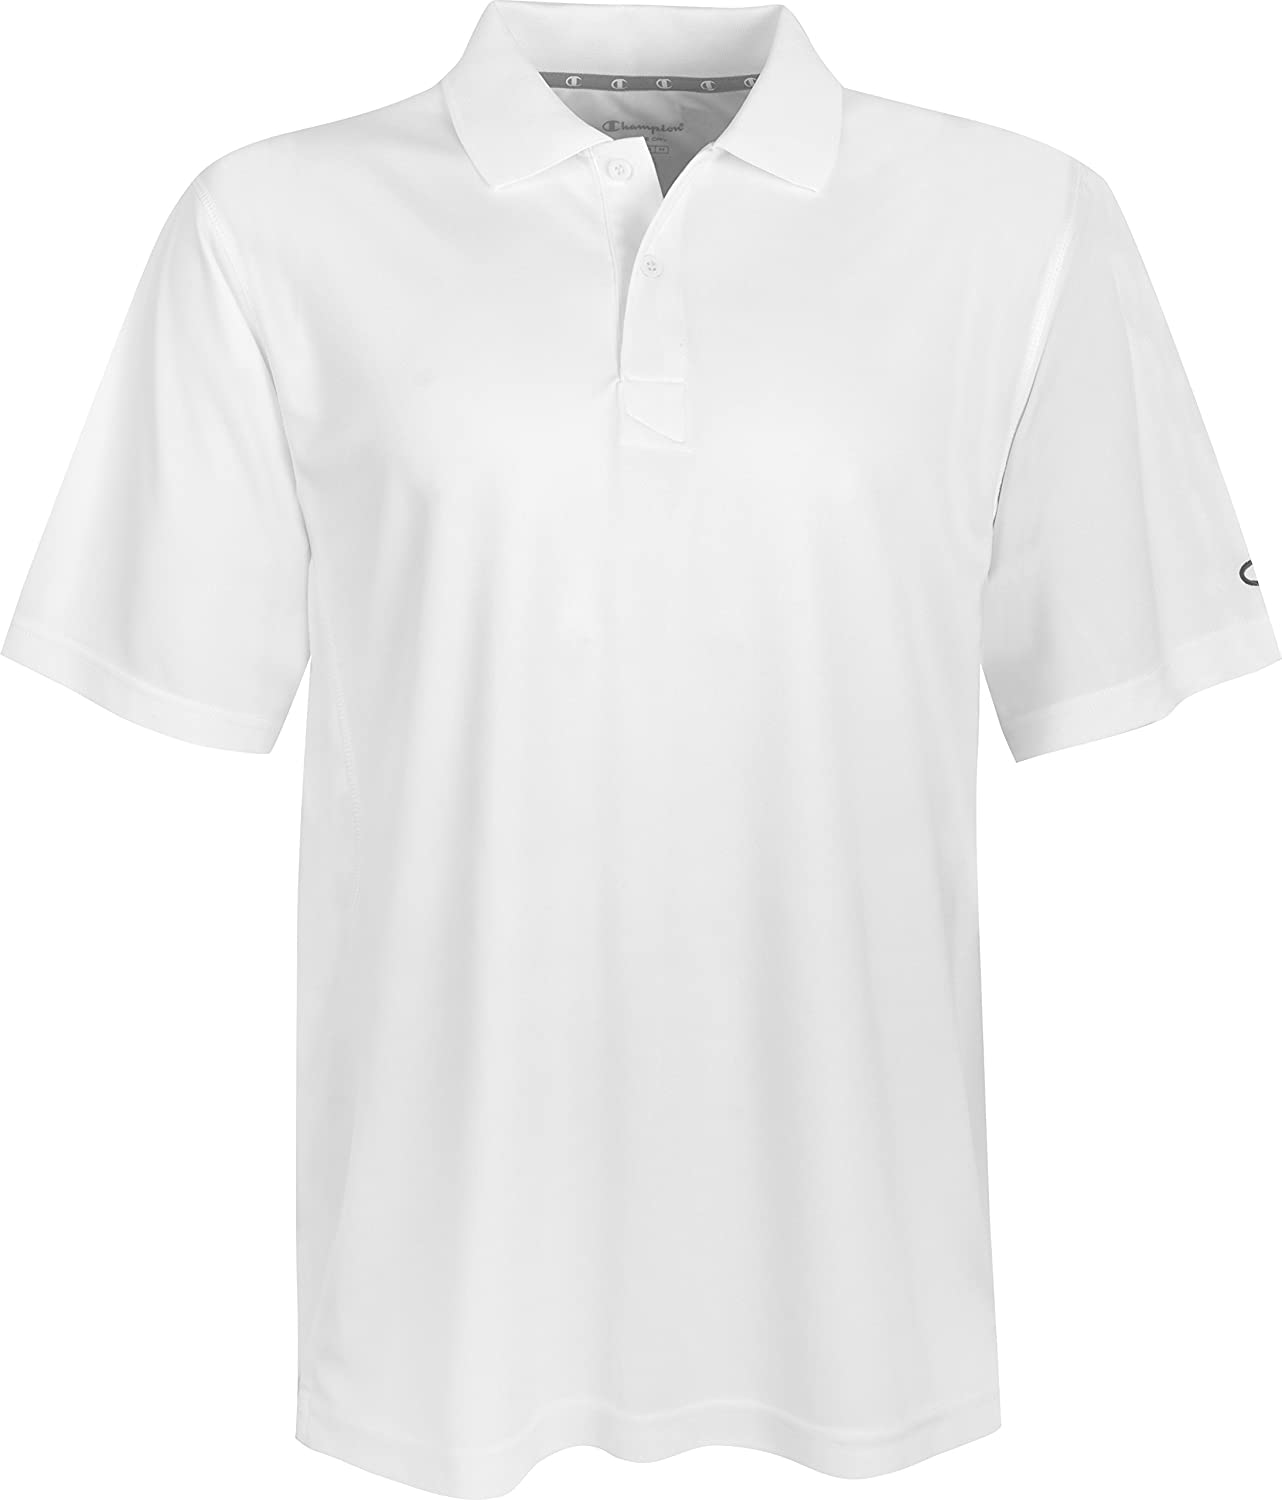 bd8e82b33db4 Champion Women s Ultimate Double Dry Performance Sport Shirt - H132 at  Amazon Women s Clothing store